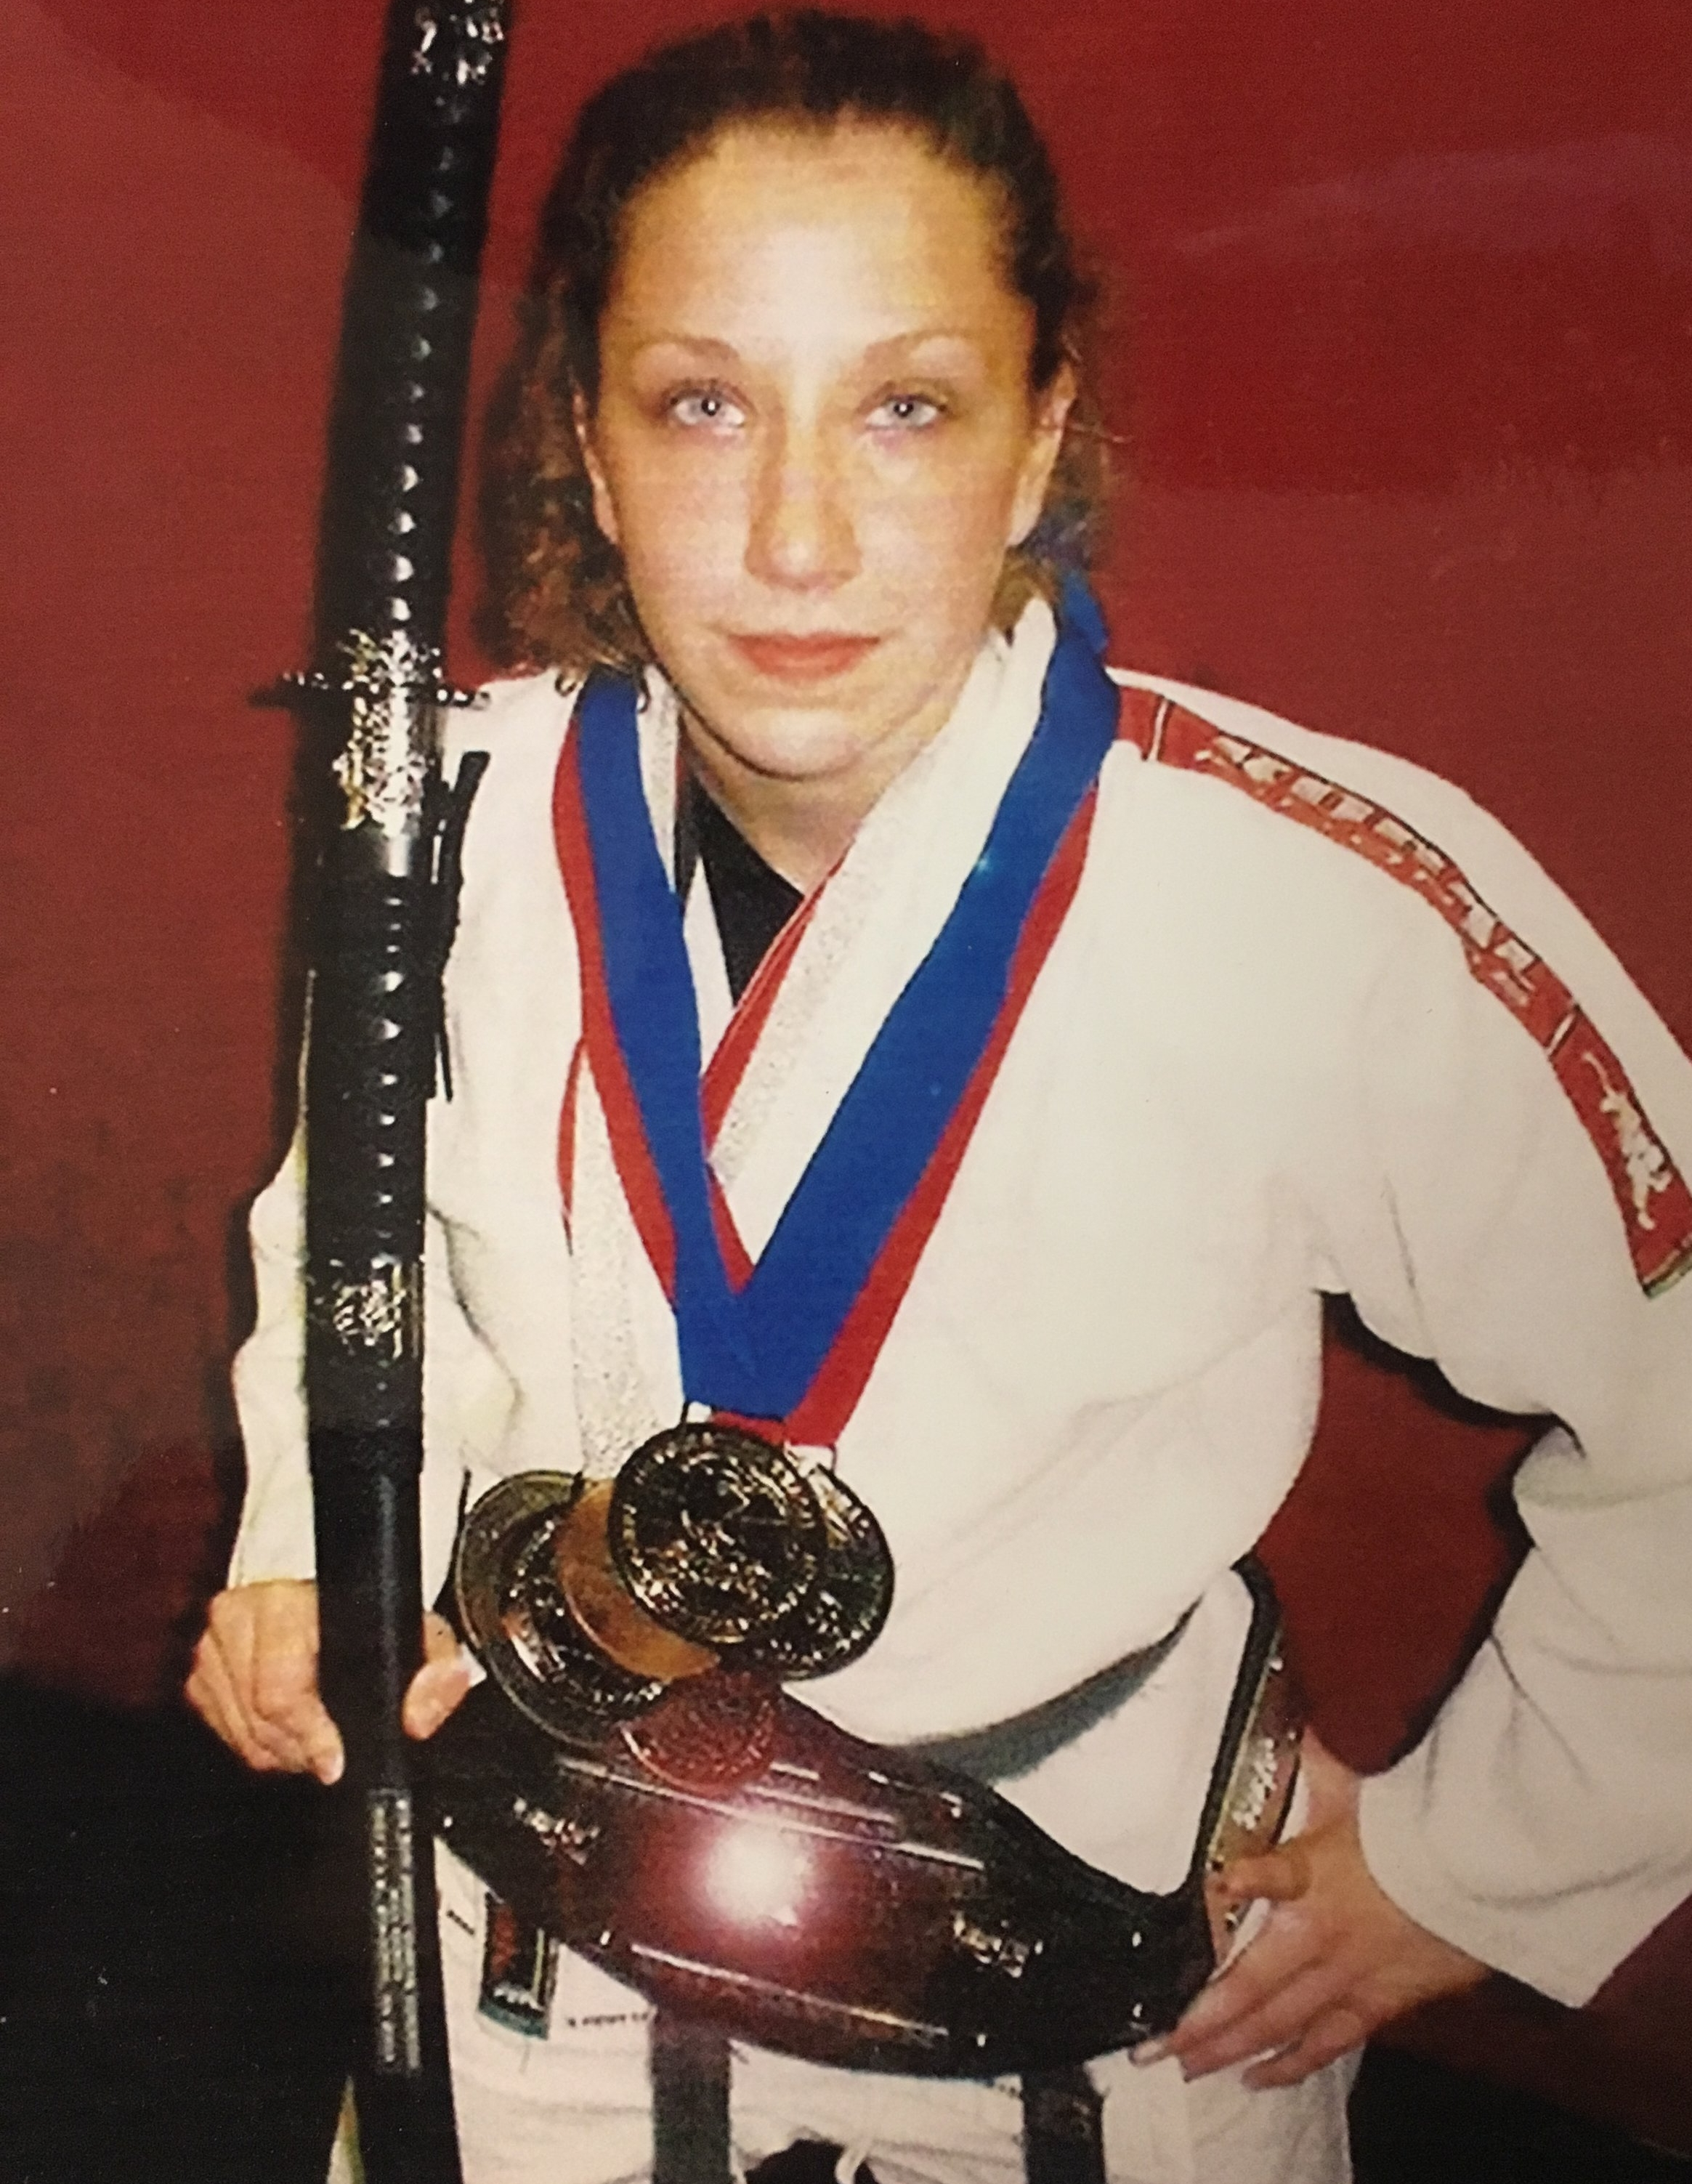 Erin Comstock - was the N.A.G.A #1 Ranked Female Grappler in 2004. Erin was Clinch Academy's first Black Belt under our Clinch Combat Jiu-Jitsu system.